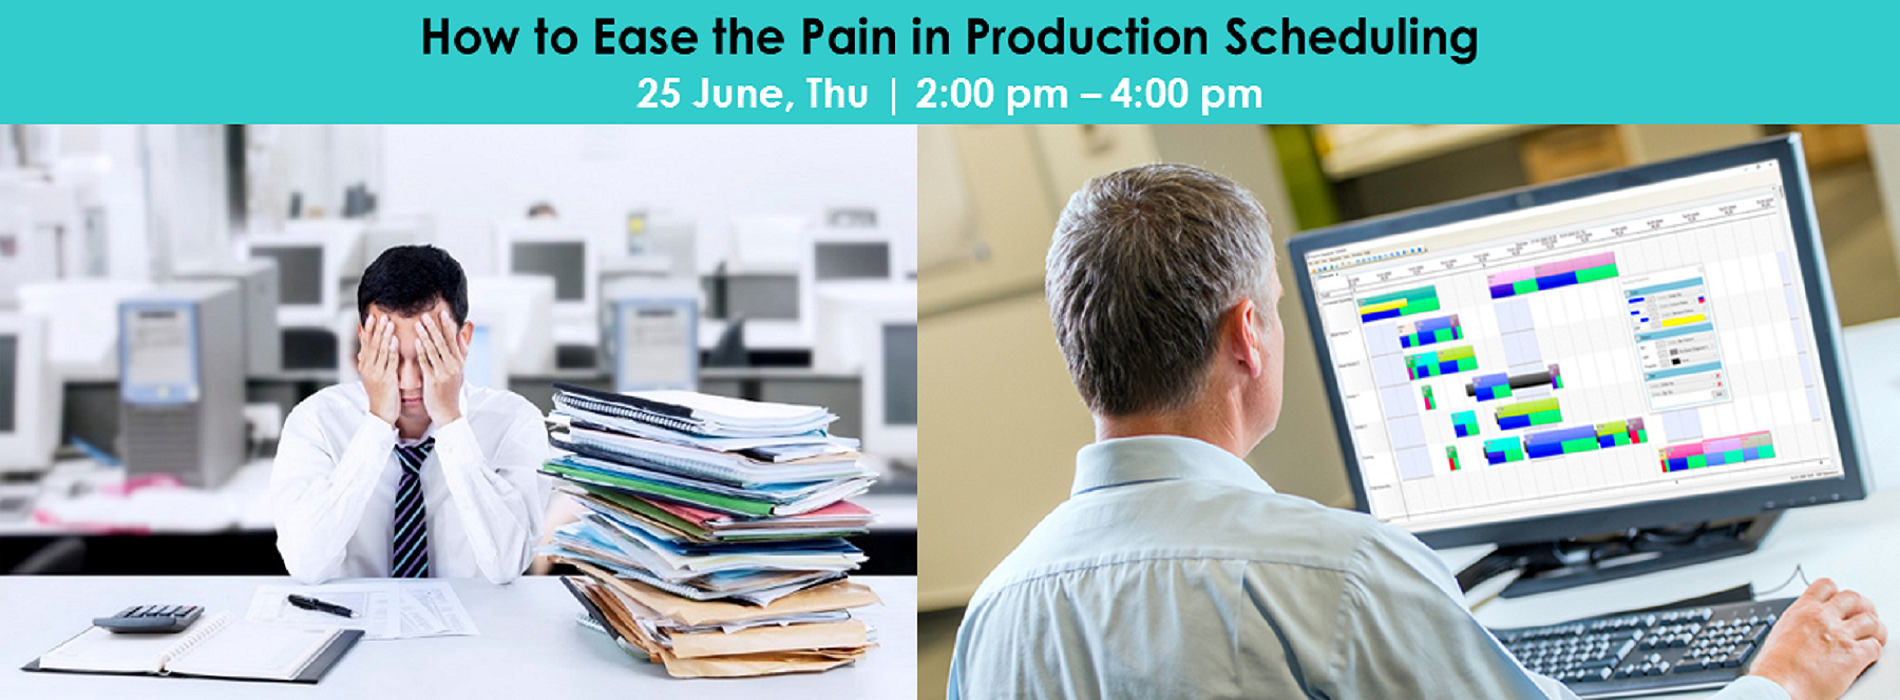 How to Ease the Pain in Production Scheduling 2